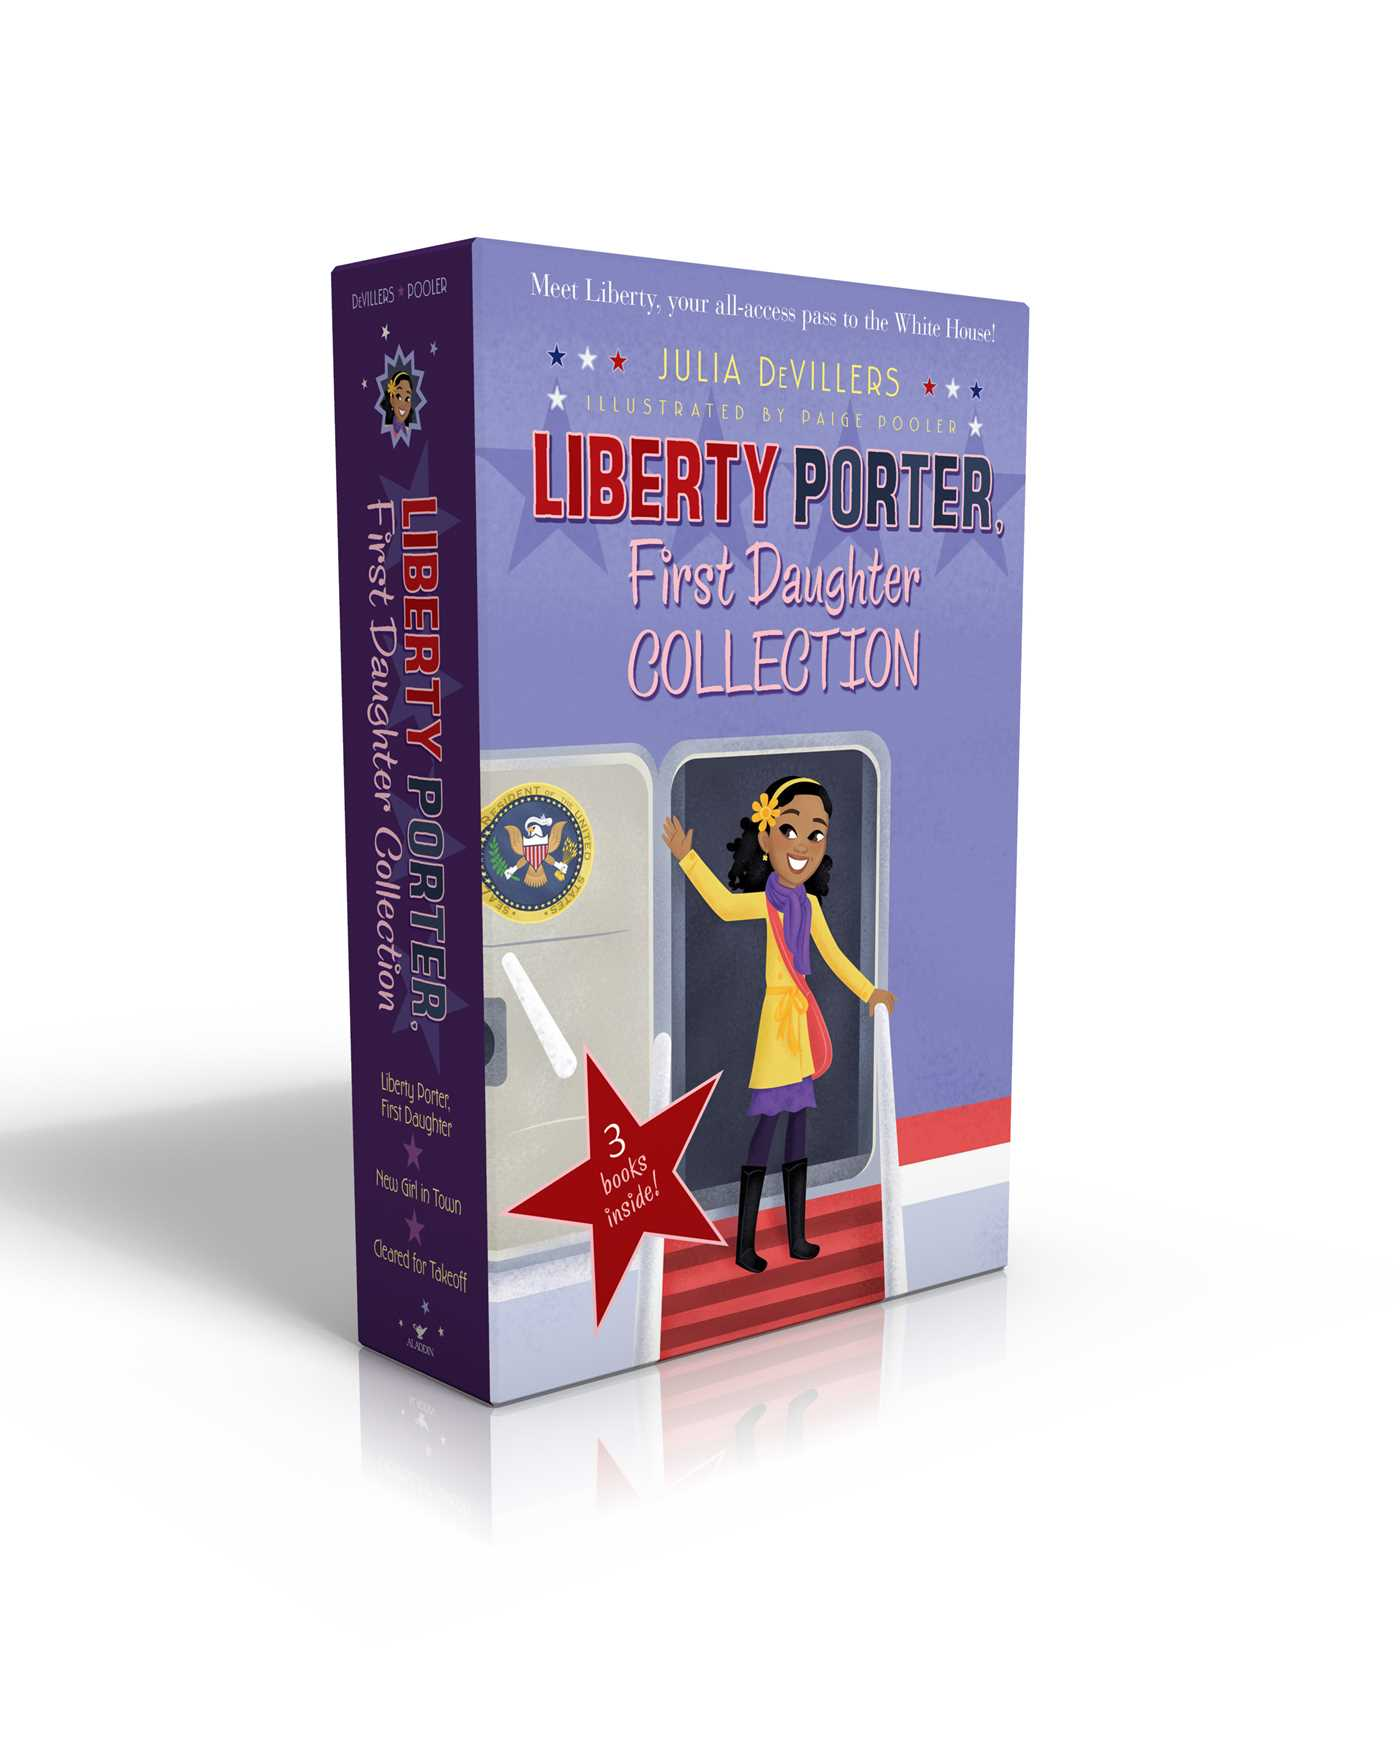 Liberty porter first daughter collection 9781481485425 hr